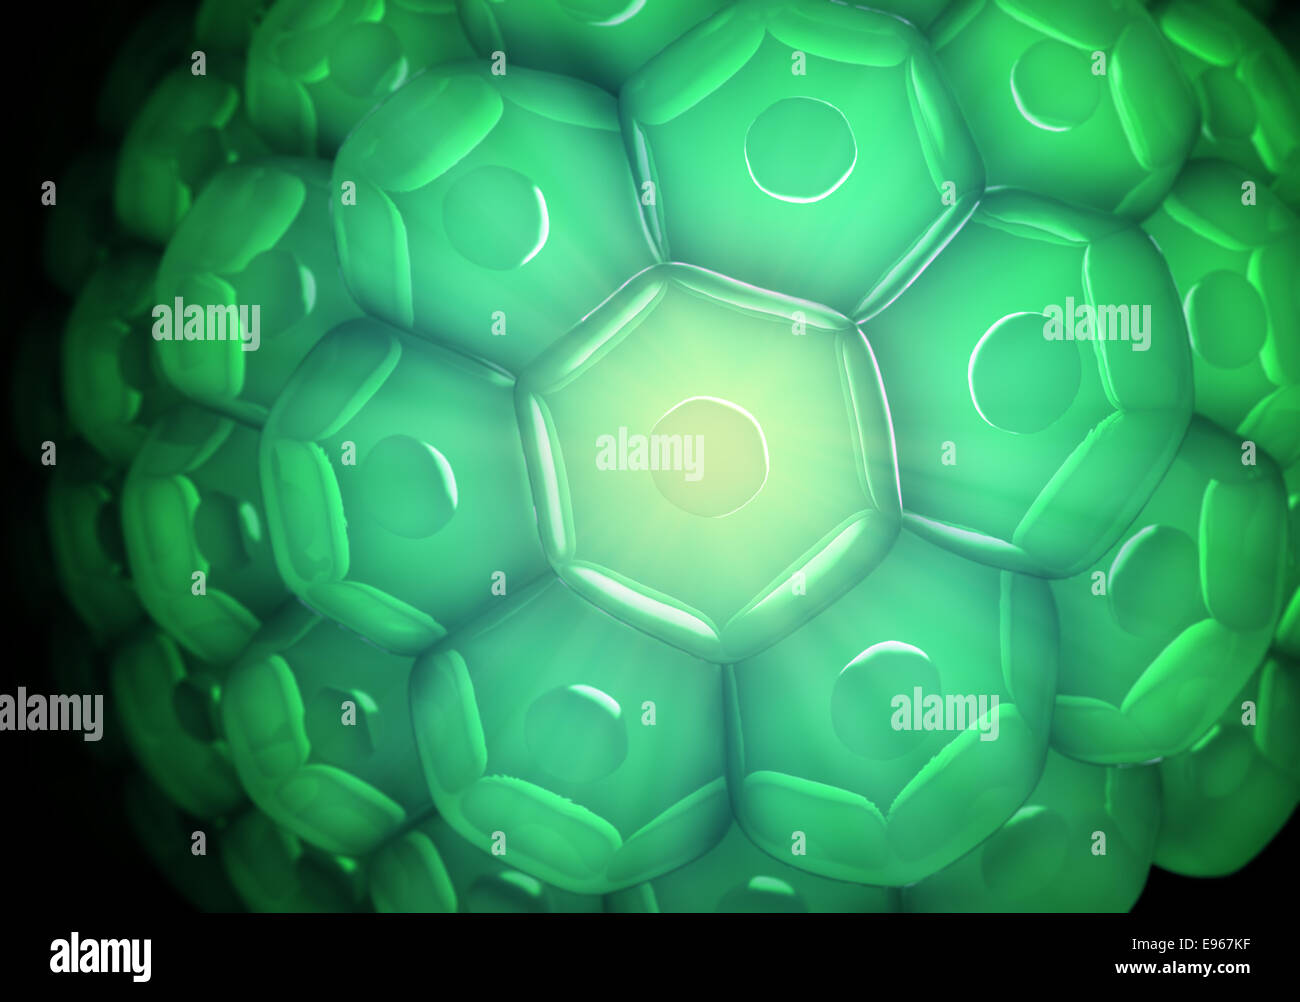 close up view of a cell wall biology background stock photo